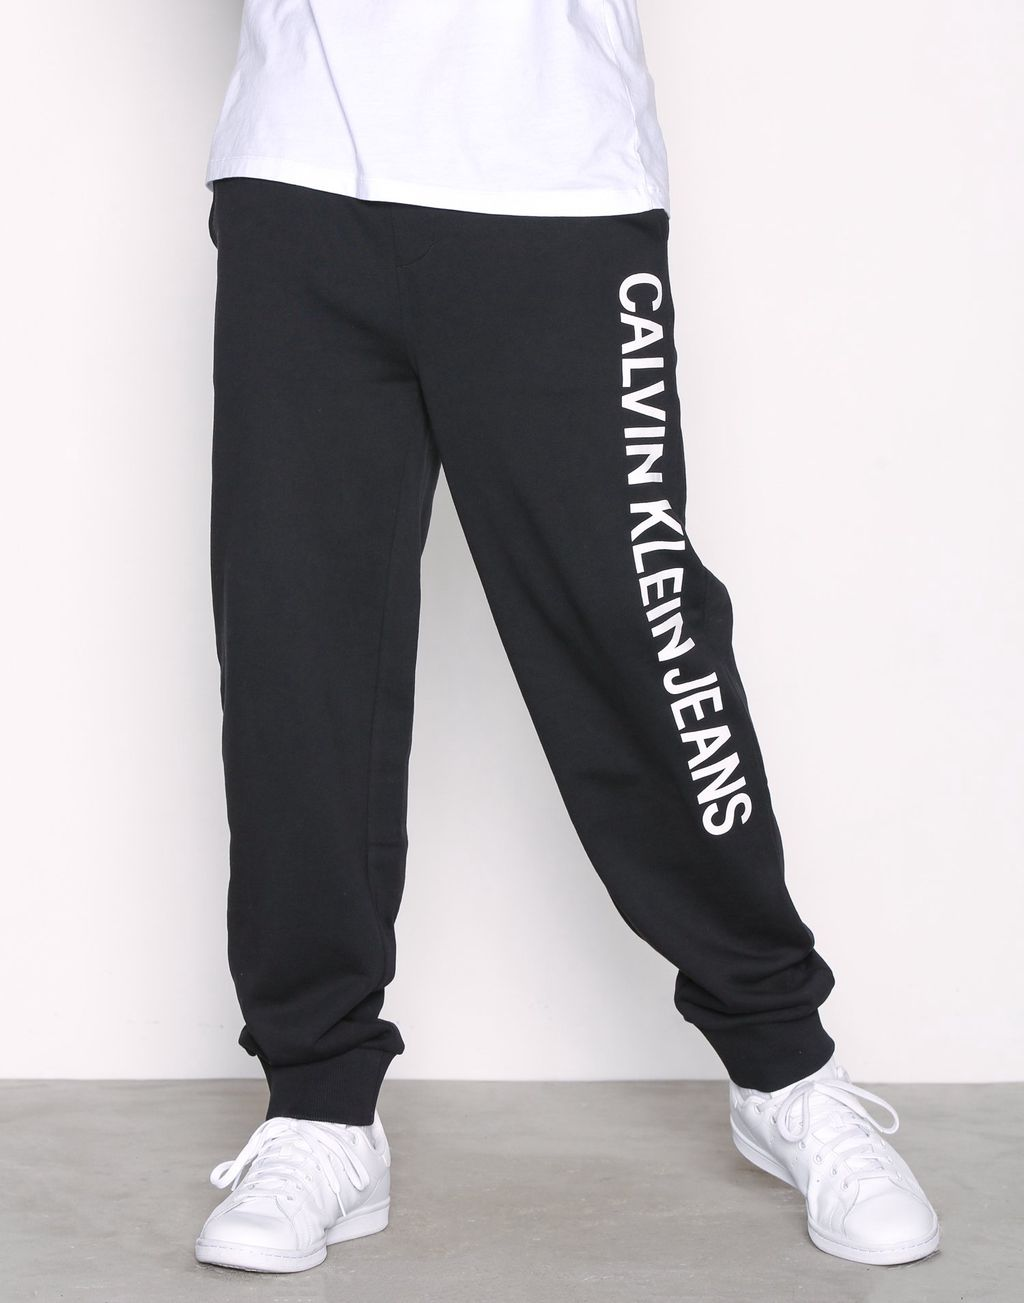 Institutional Side Jogging Pants - NLY Man  92d3f38fb4dae